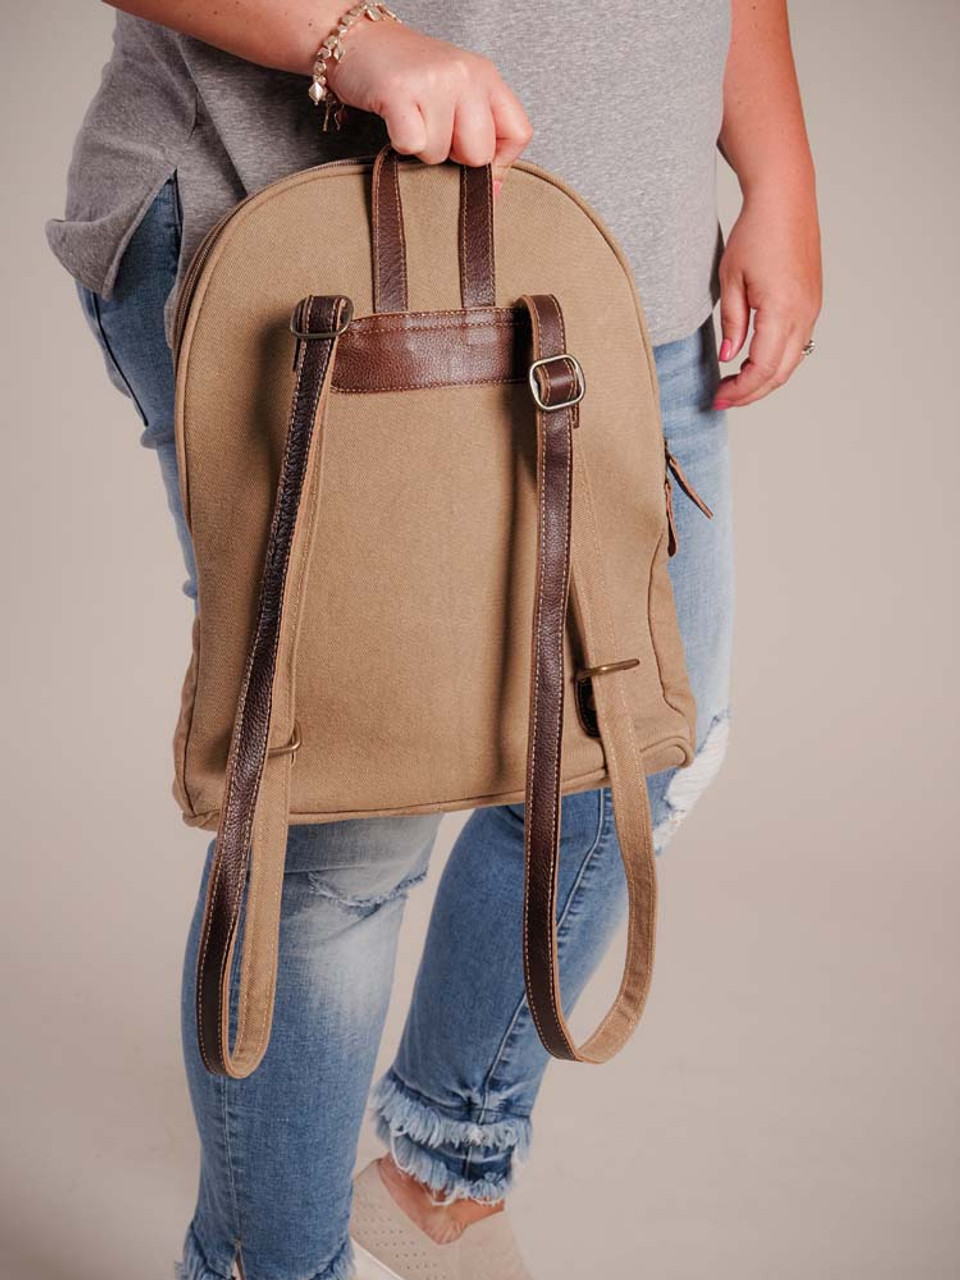 This backpack has an artistic design that was borrowed from an upcycled unique handwoven rug; hairon accent on front; leather details; zipper pocket on front; zipper close with two pulls zips wide open from half way up one side of the bag to half way down the other side; canvas back and bottom; handle and adjustable shoulder straps; fully lined interior with two slip pockets and a zipper pocket.